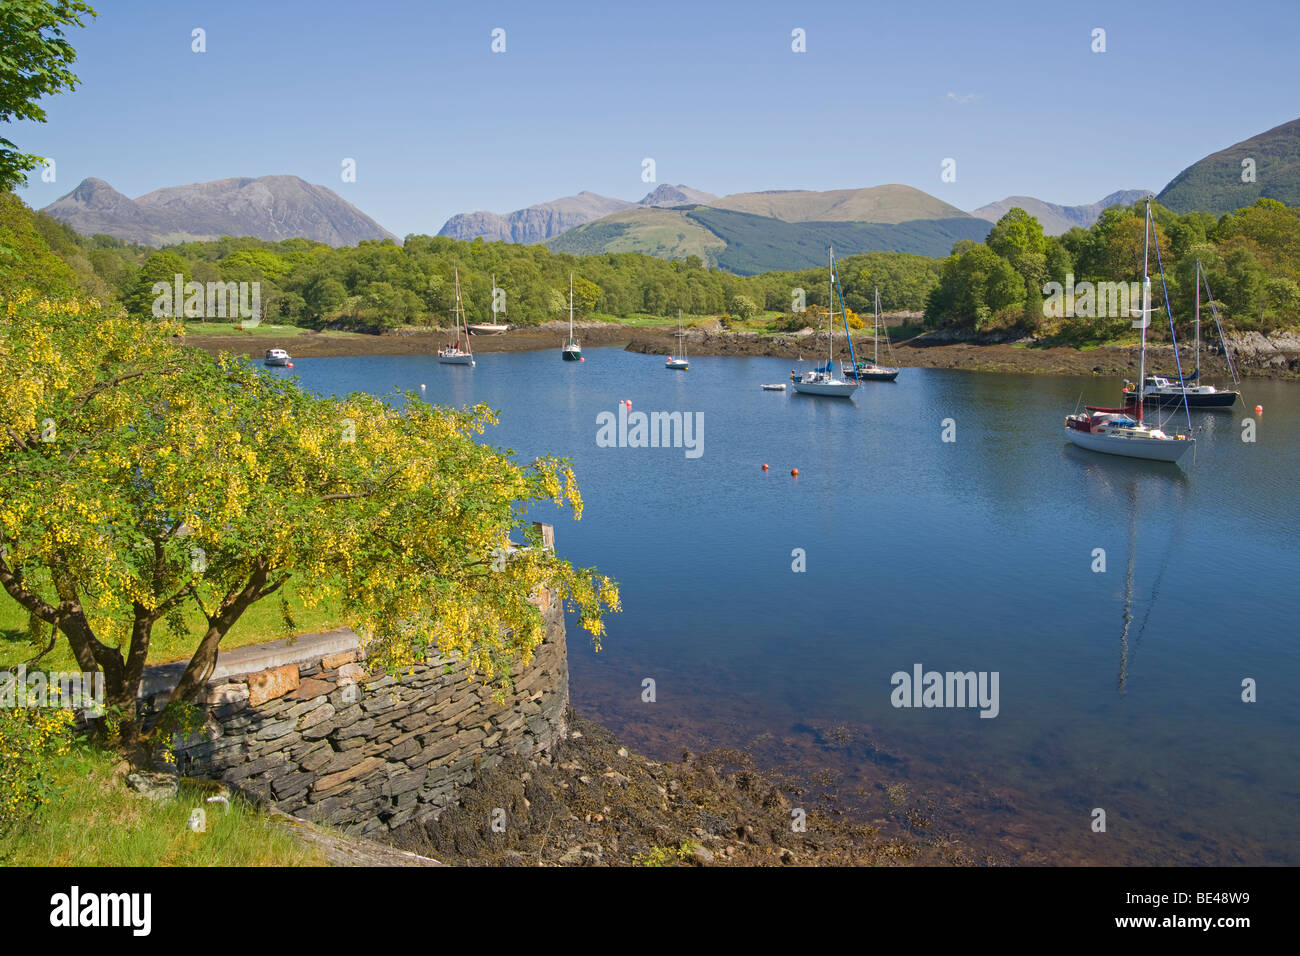 Loch Leven, Bishop's Bay, looking to Pap of Glencoe, North Ballachulish, Highland Region, Scotland, June, 2009 - Stock Image